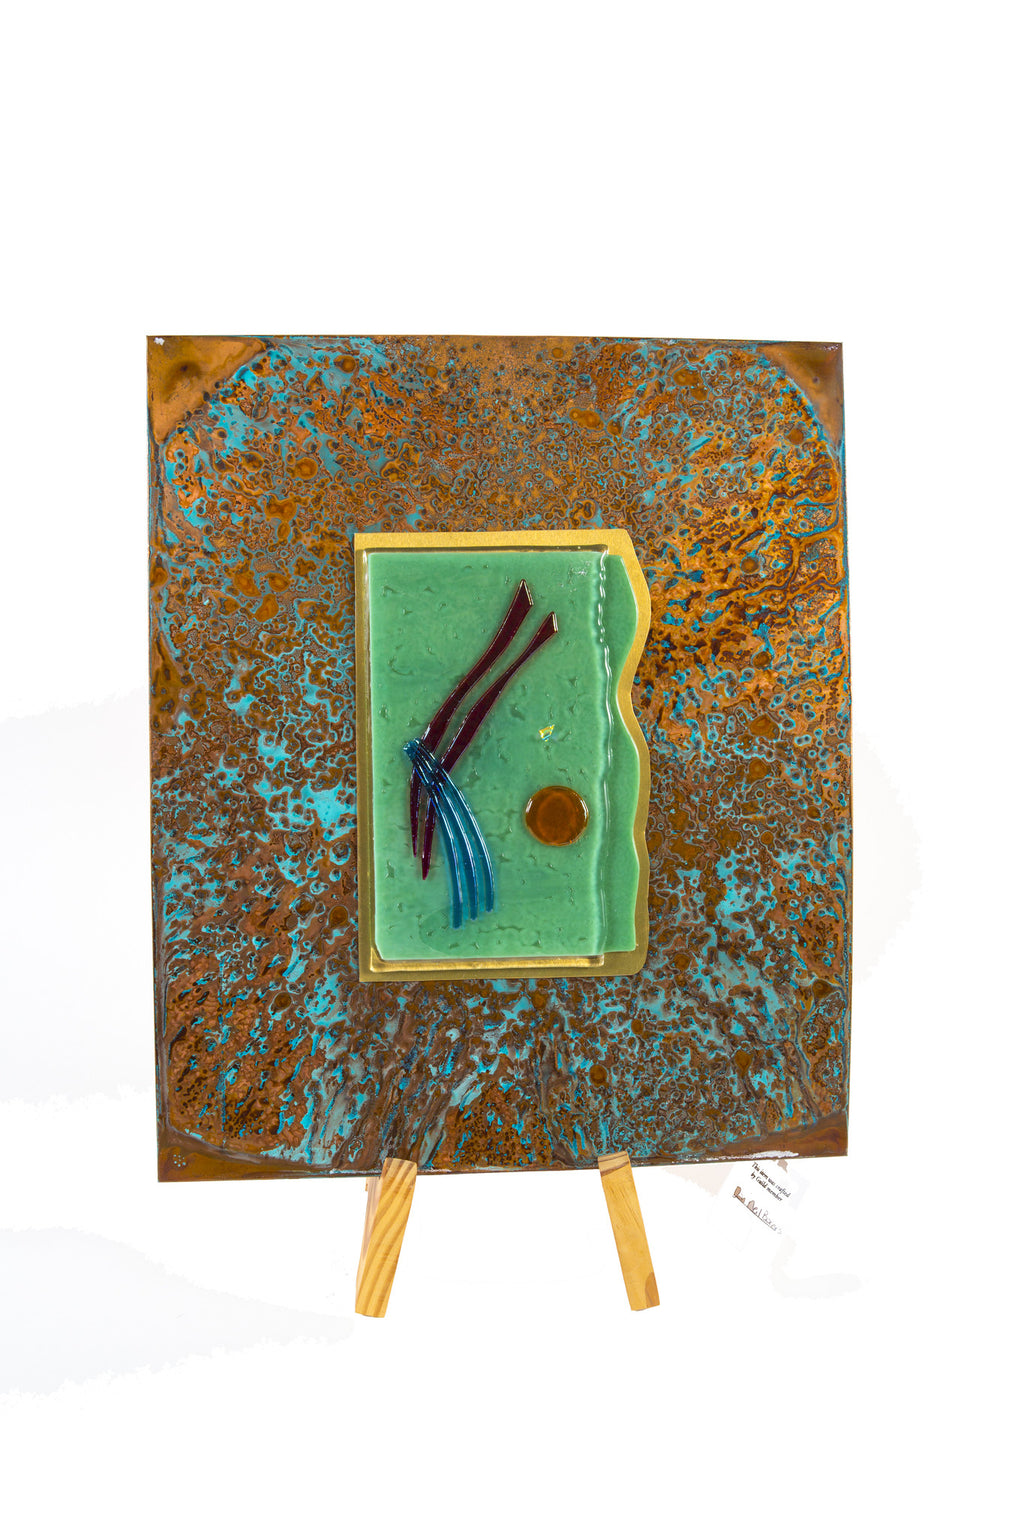 Copper & Glass 15X19 by Dan Neil Barnes